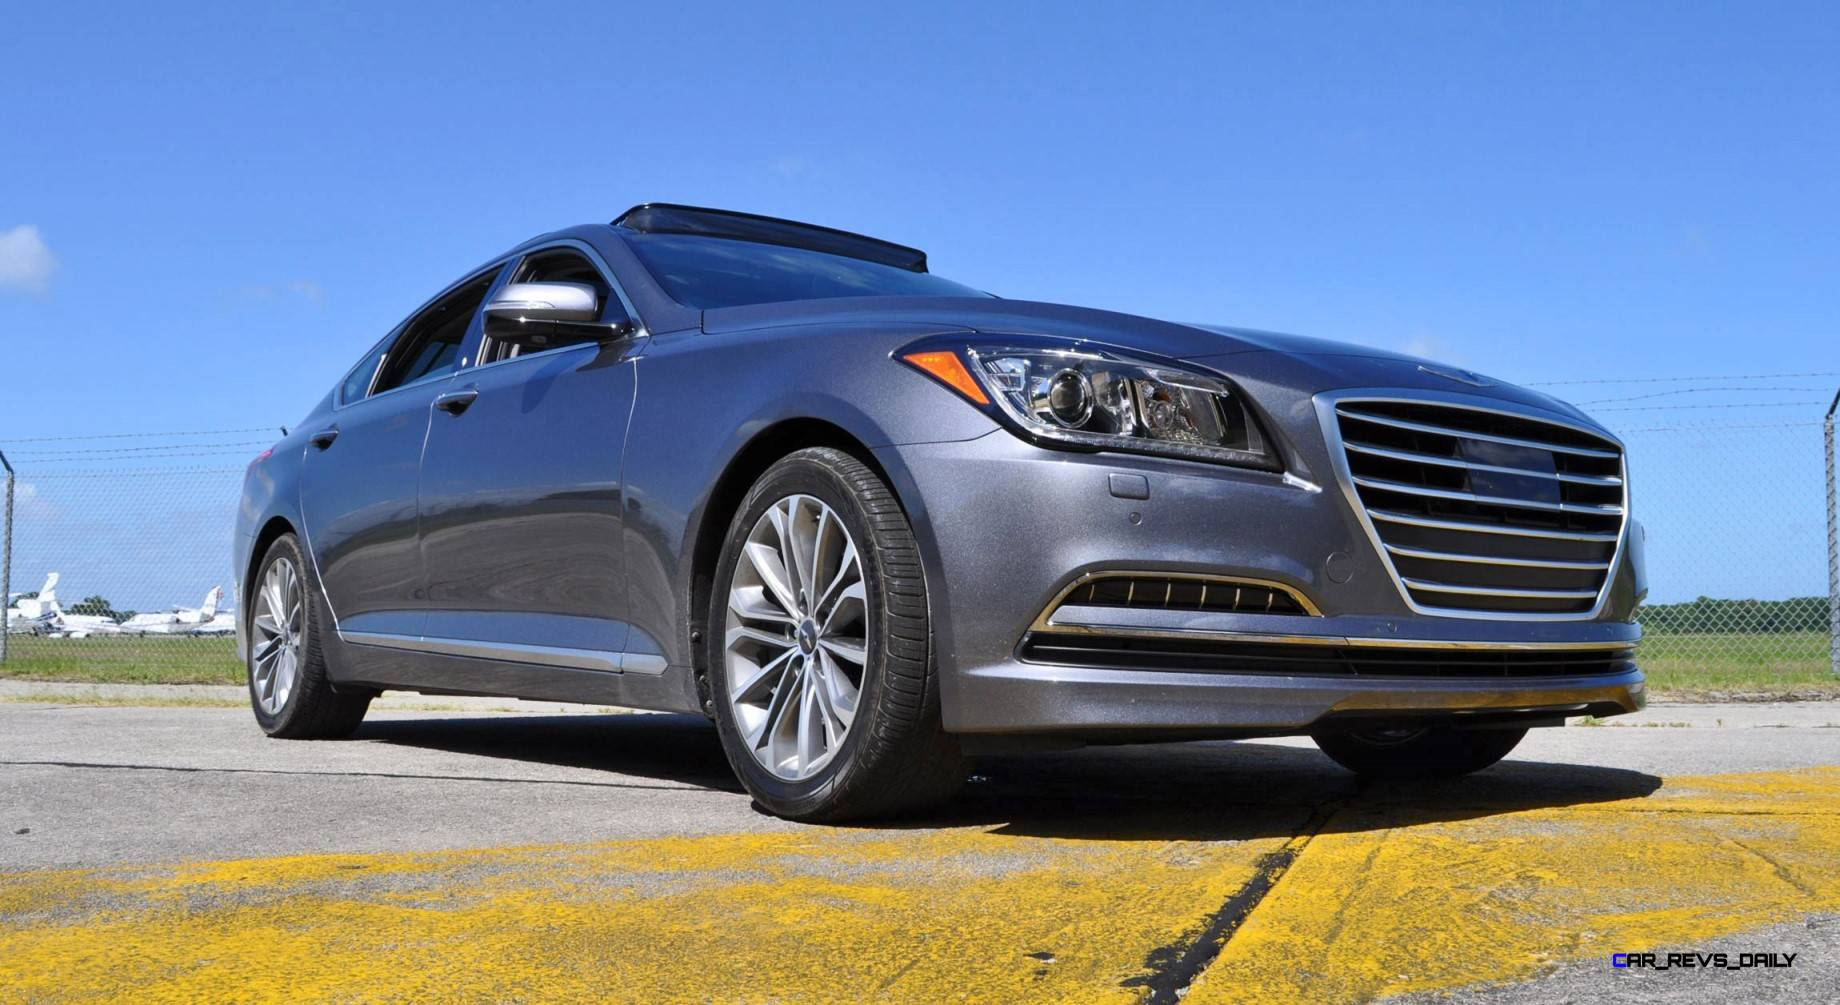 2015 hyundai genesis 3 8 awd exterior photos 70. Black Bedroom Furniture Sets. Home Design Ideas